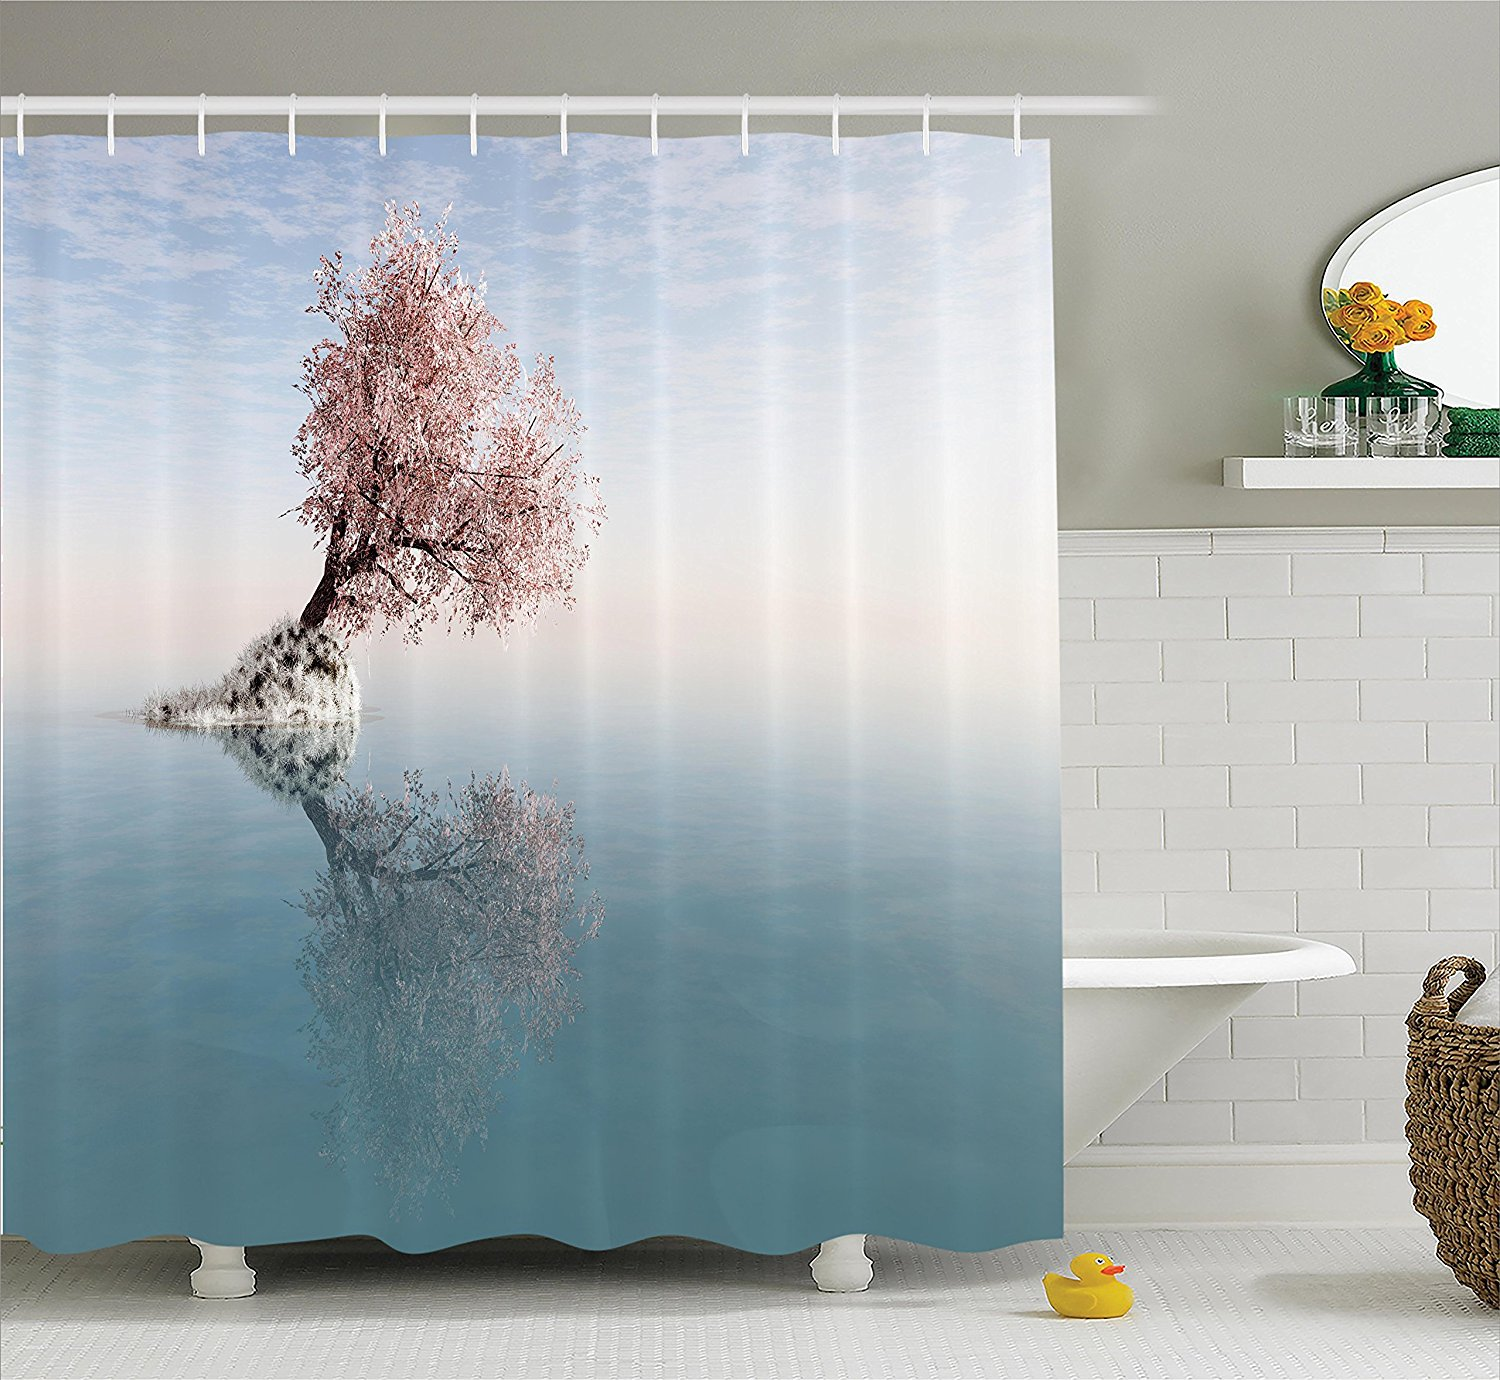 Shower Curtains That Open In The Middle.Us 13 02 43 Off Farm Decor Shower Curtain Flower Tree In The Middle Of Lake With Reflection In The Water Magical Scenic Bathroom Set In Shower